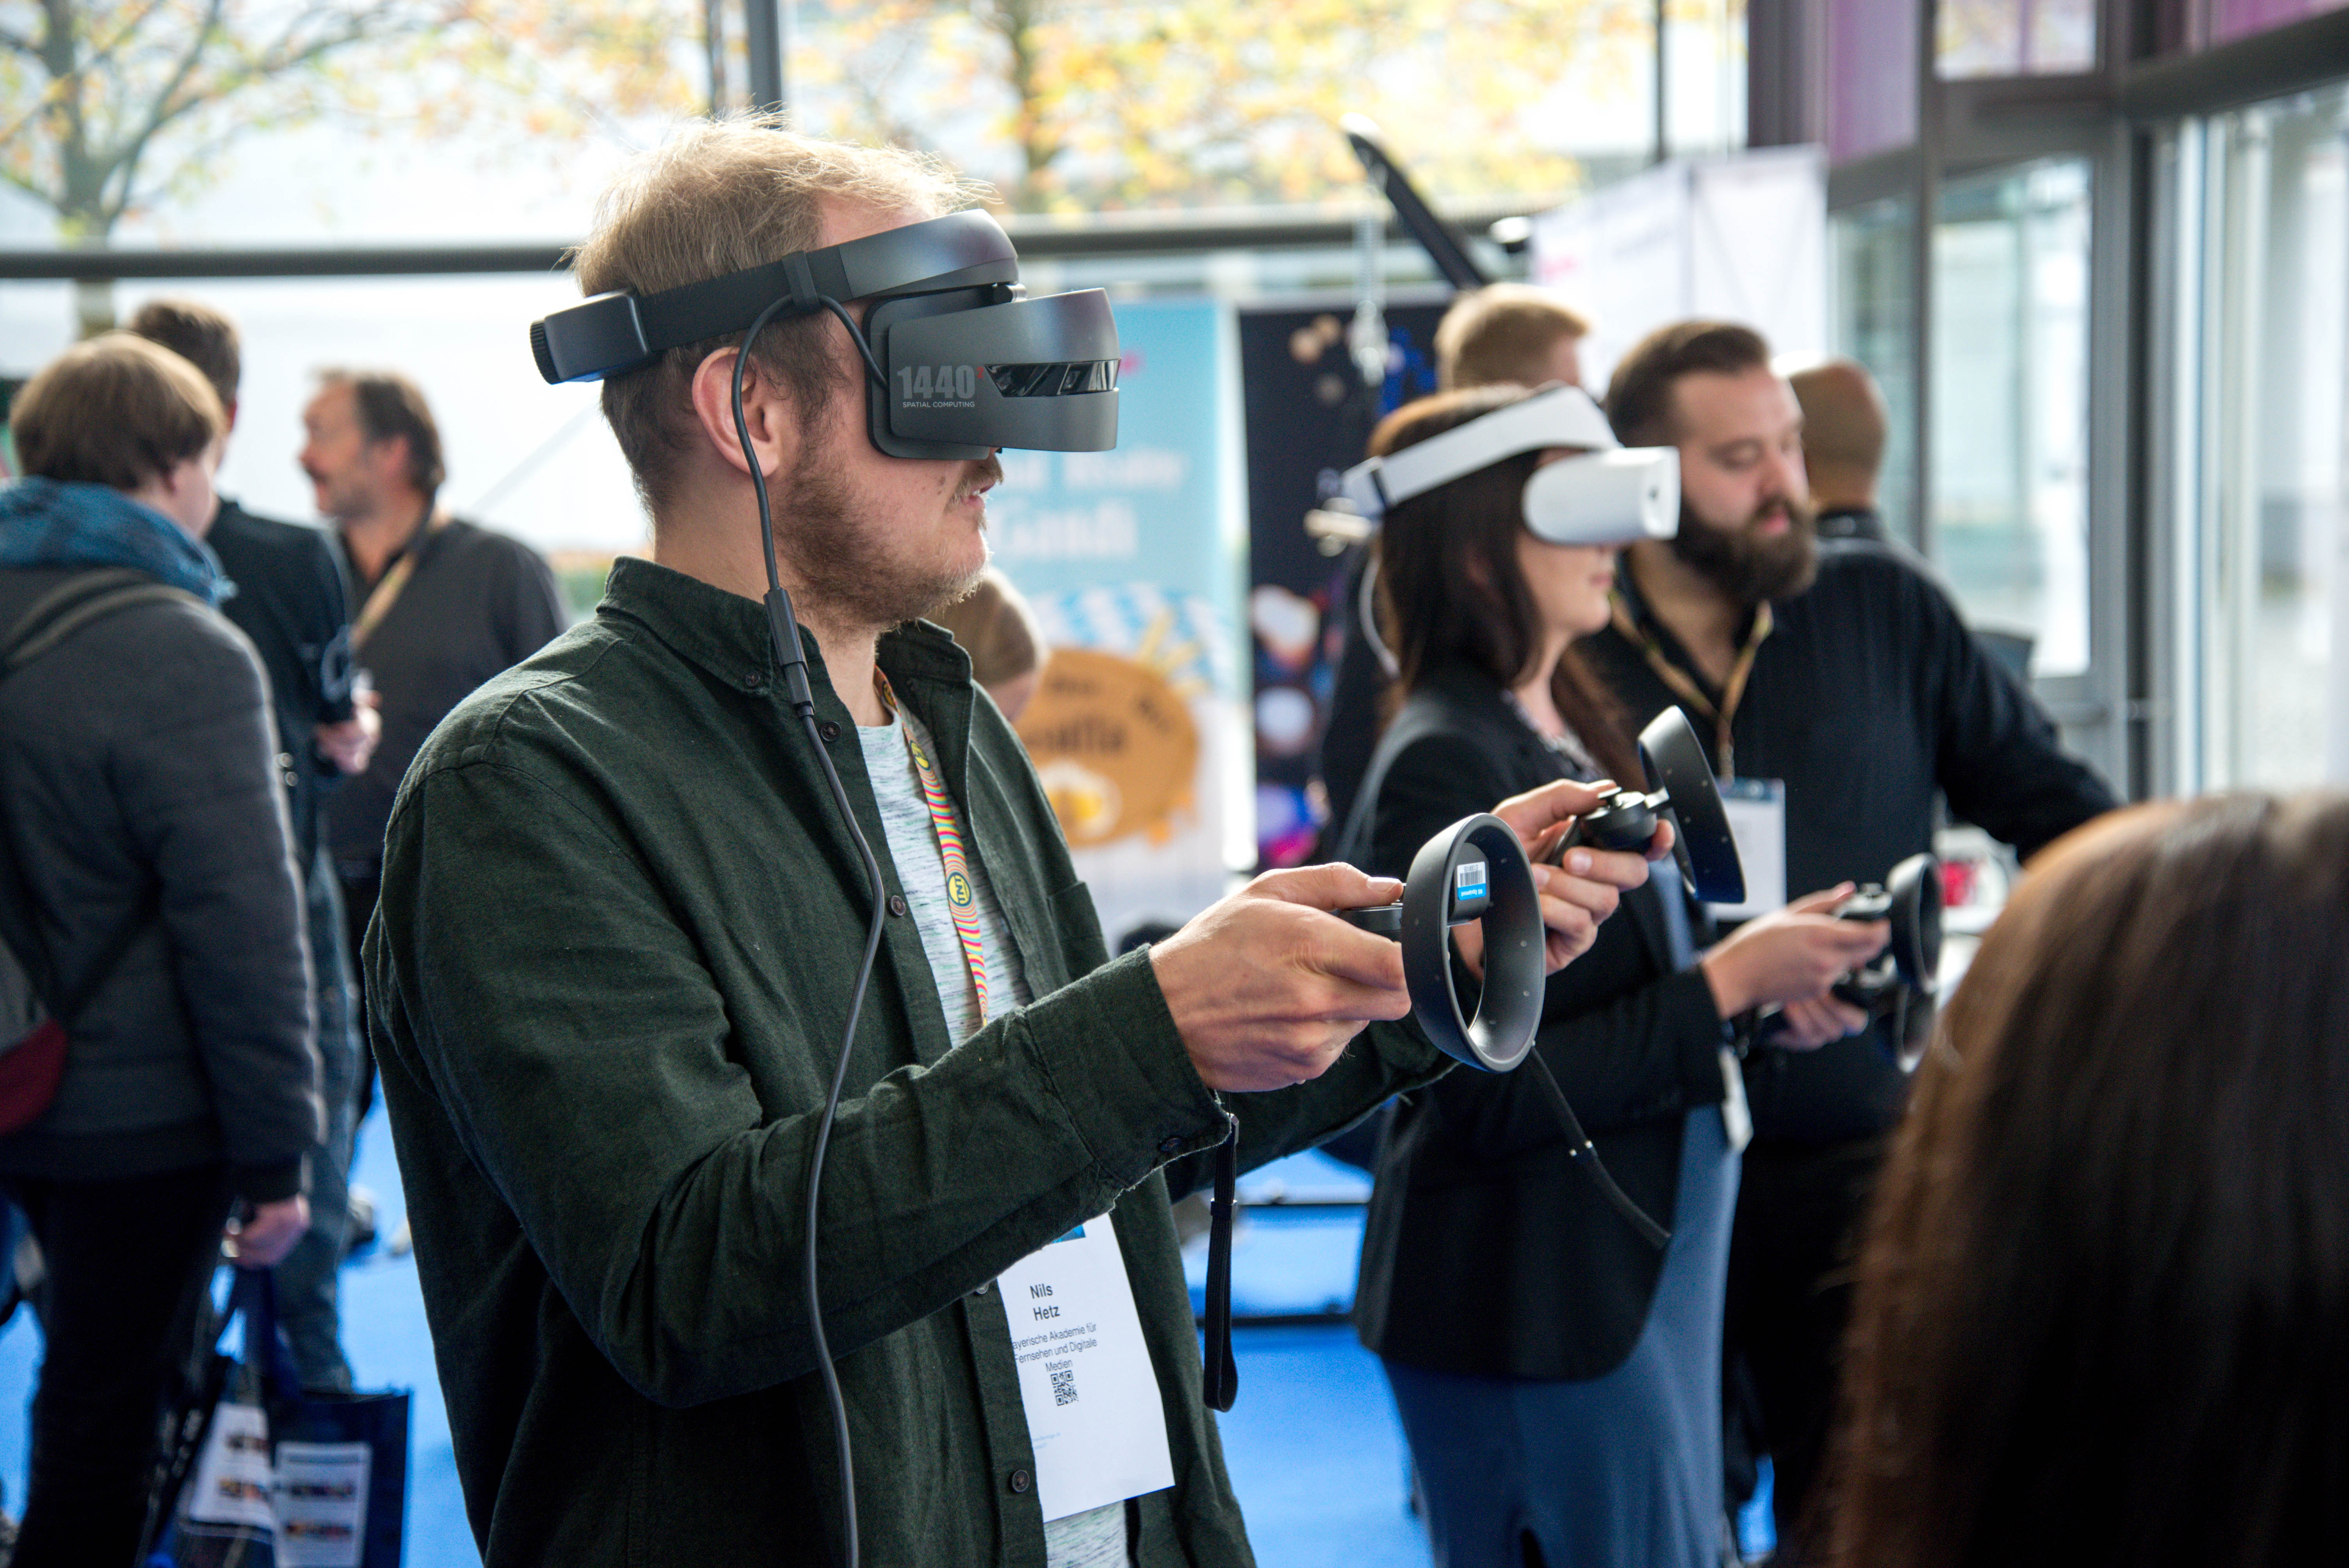 The universities adopting immersive technologies in higher education